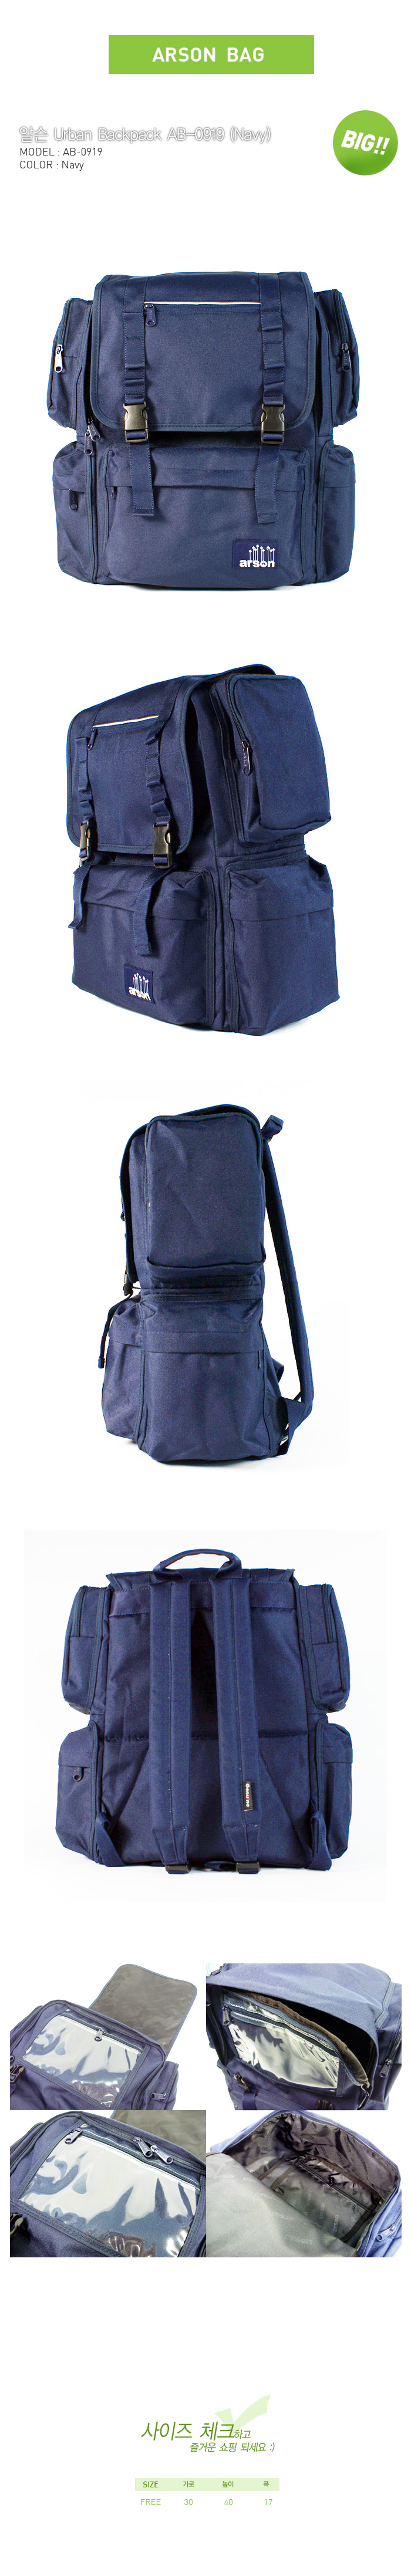 [ ARSON ] AB-0919 (Navy)/Backpack School Bag